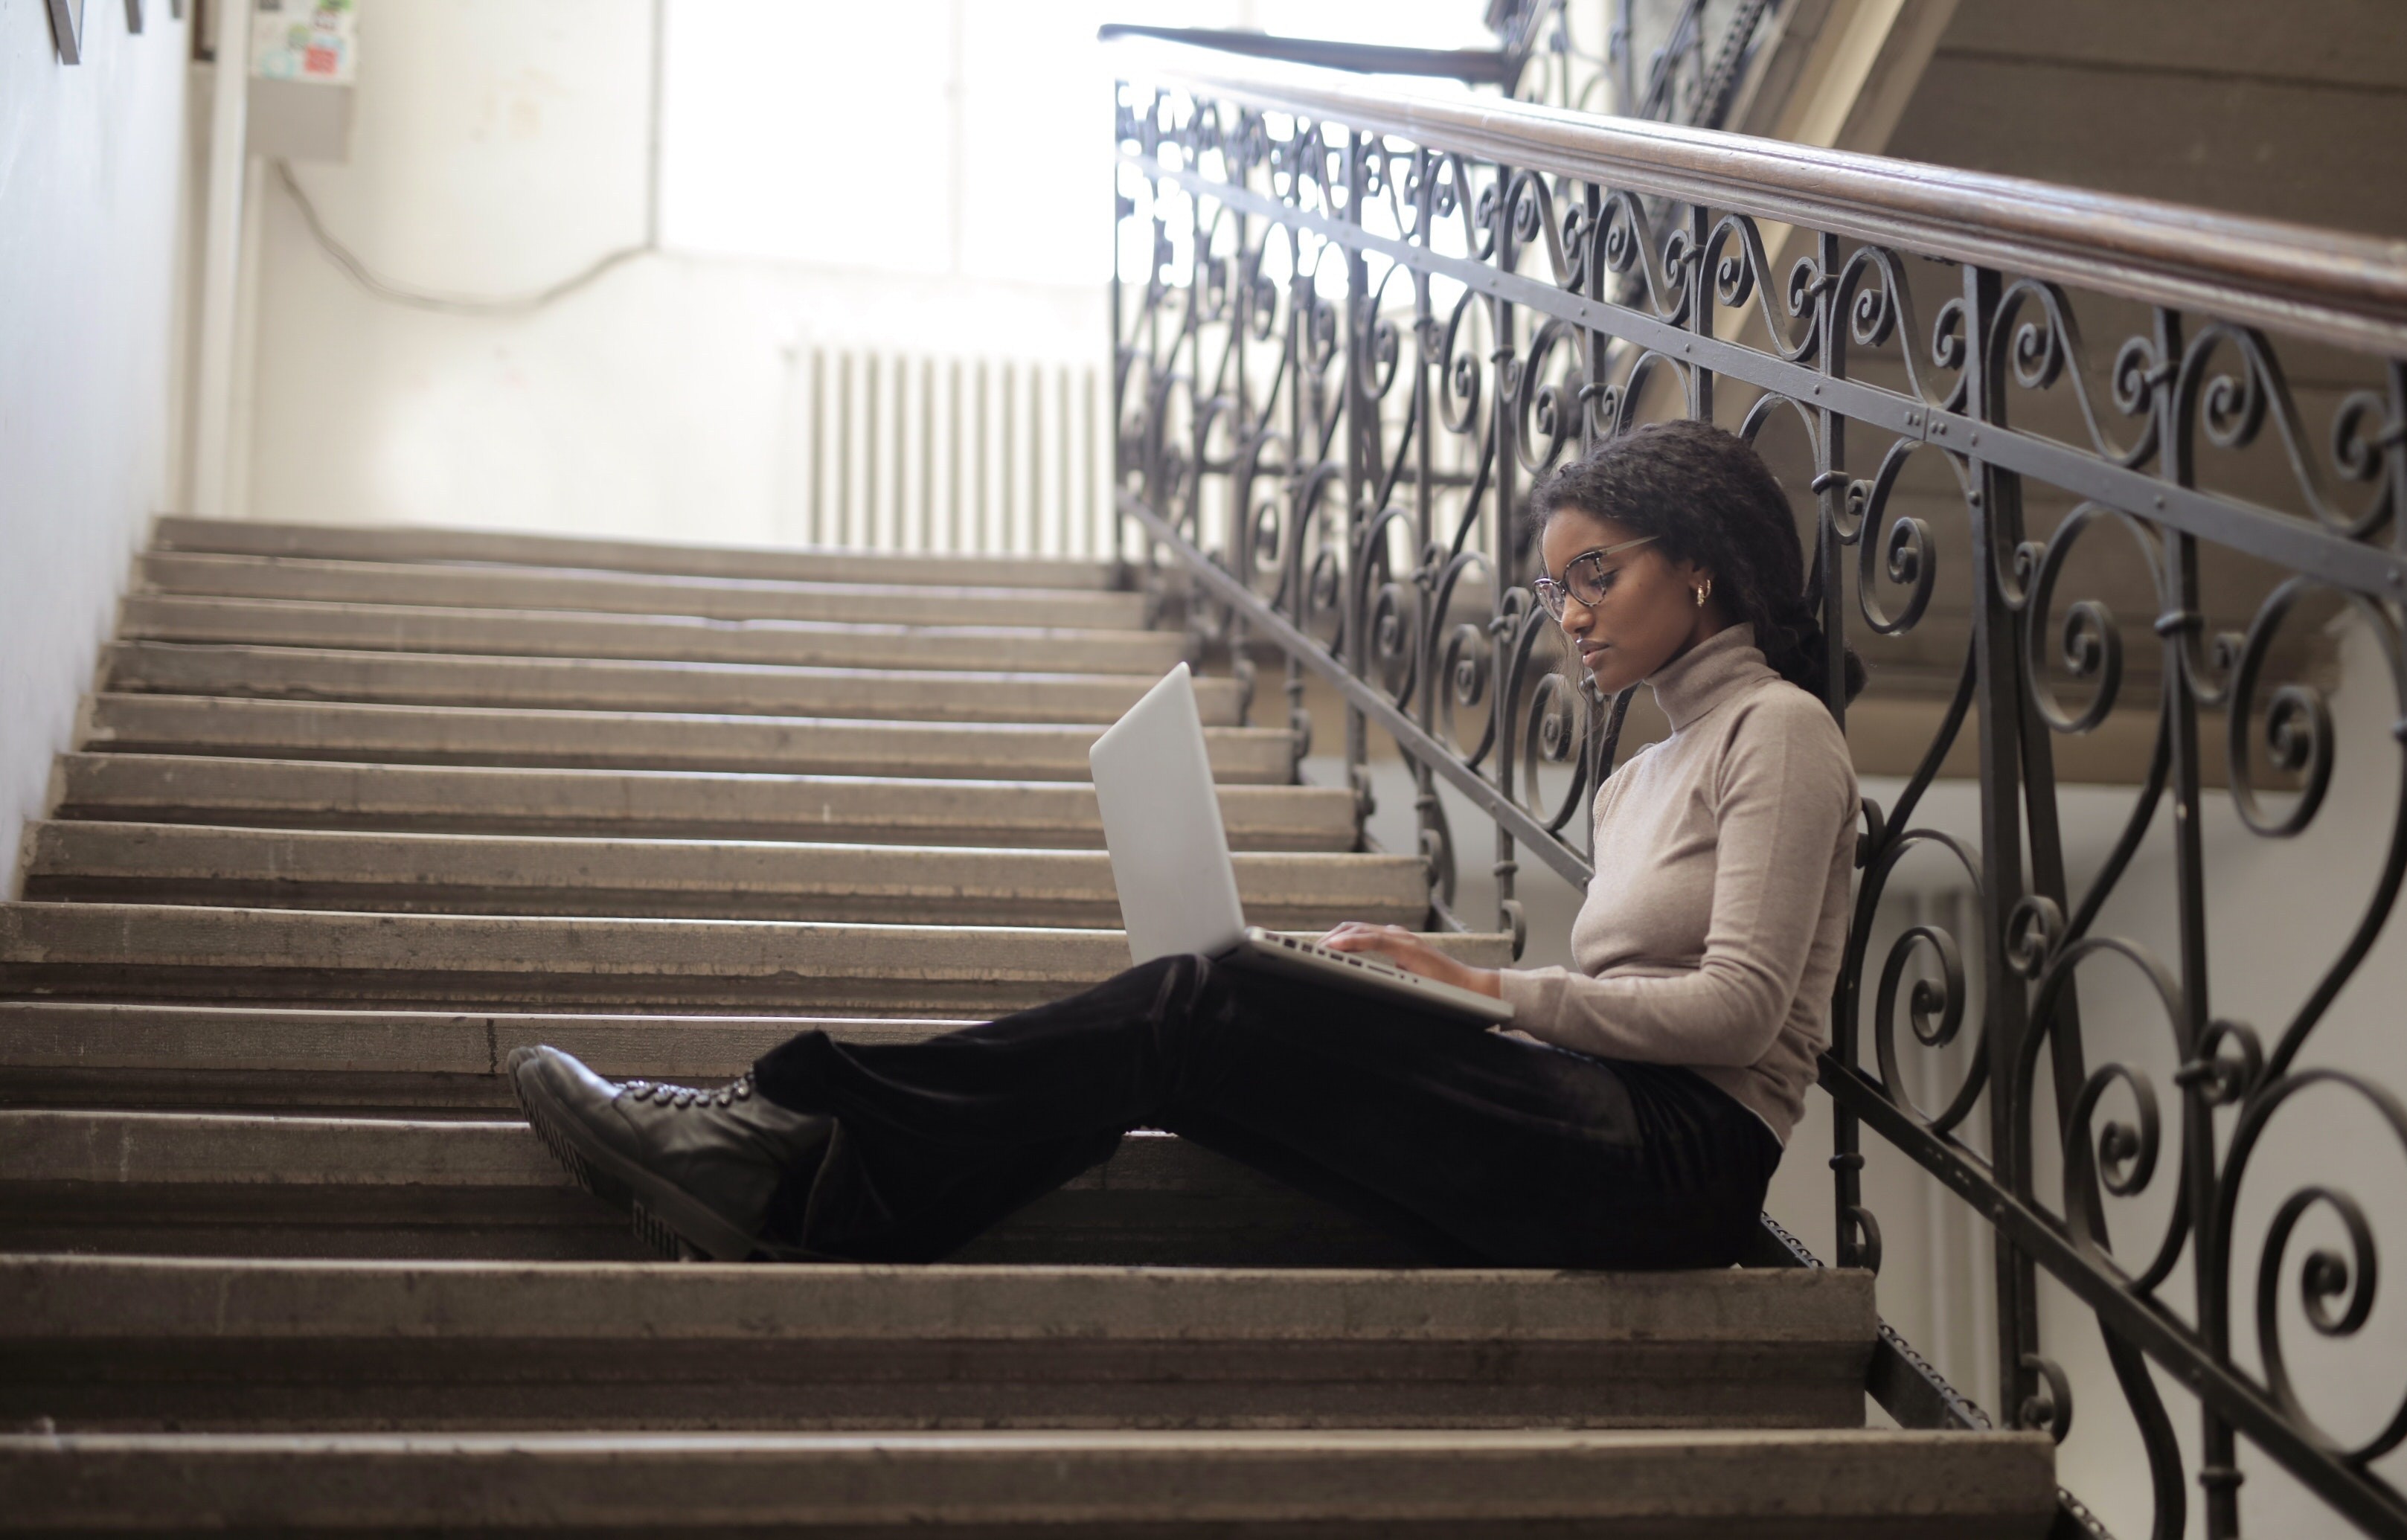 woman-sitting-on-staircase-while-using-her-laptop-3876811